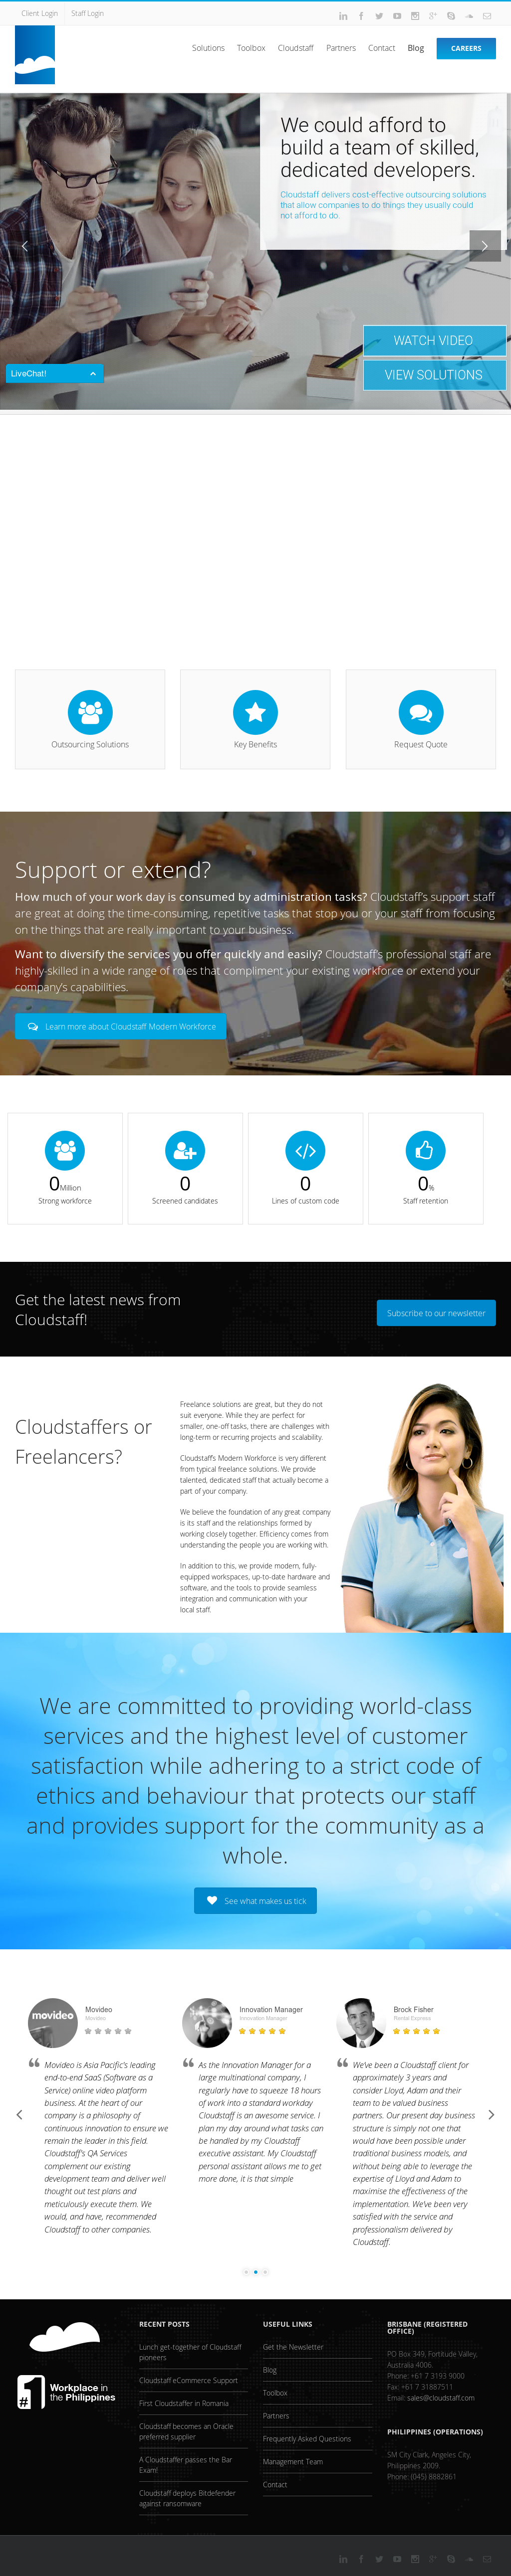 Cloudstaff Competitors, Revenue and Employees - Owler Company Profile